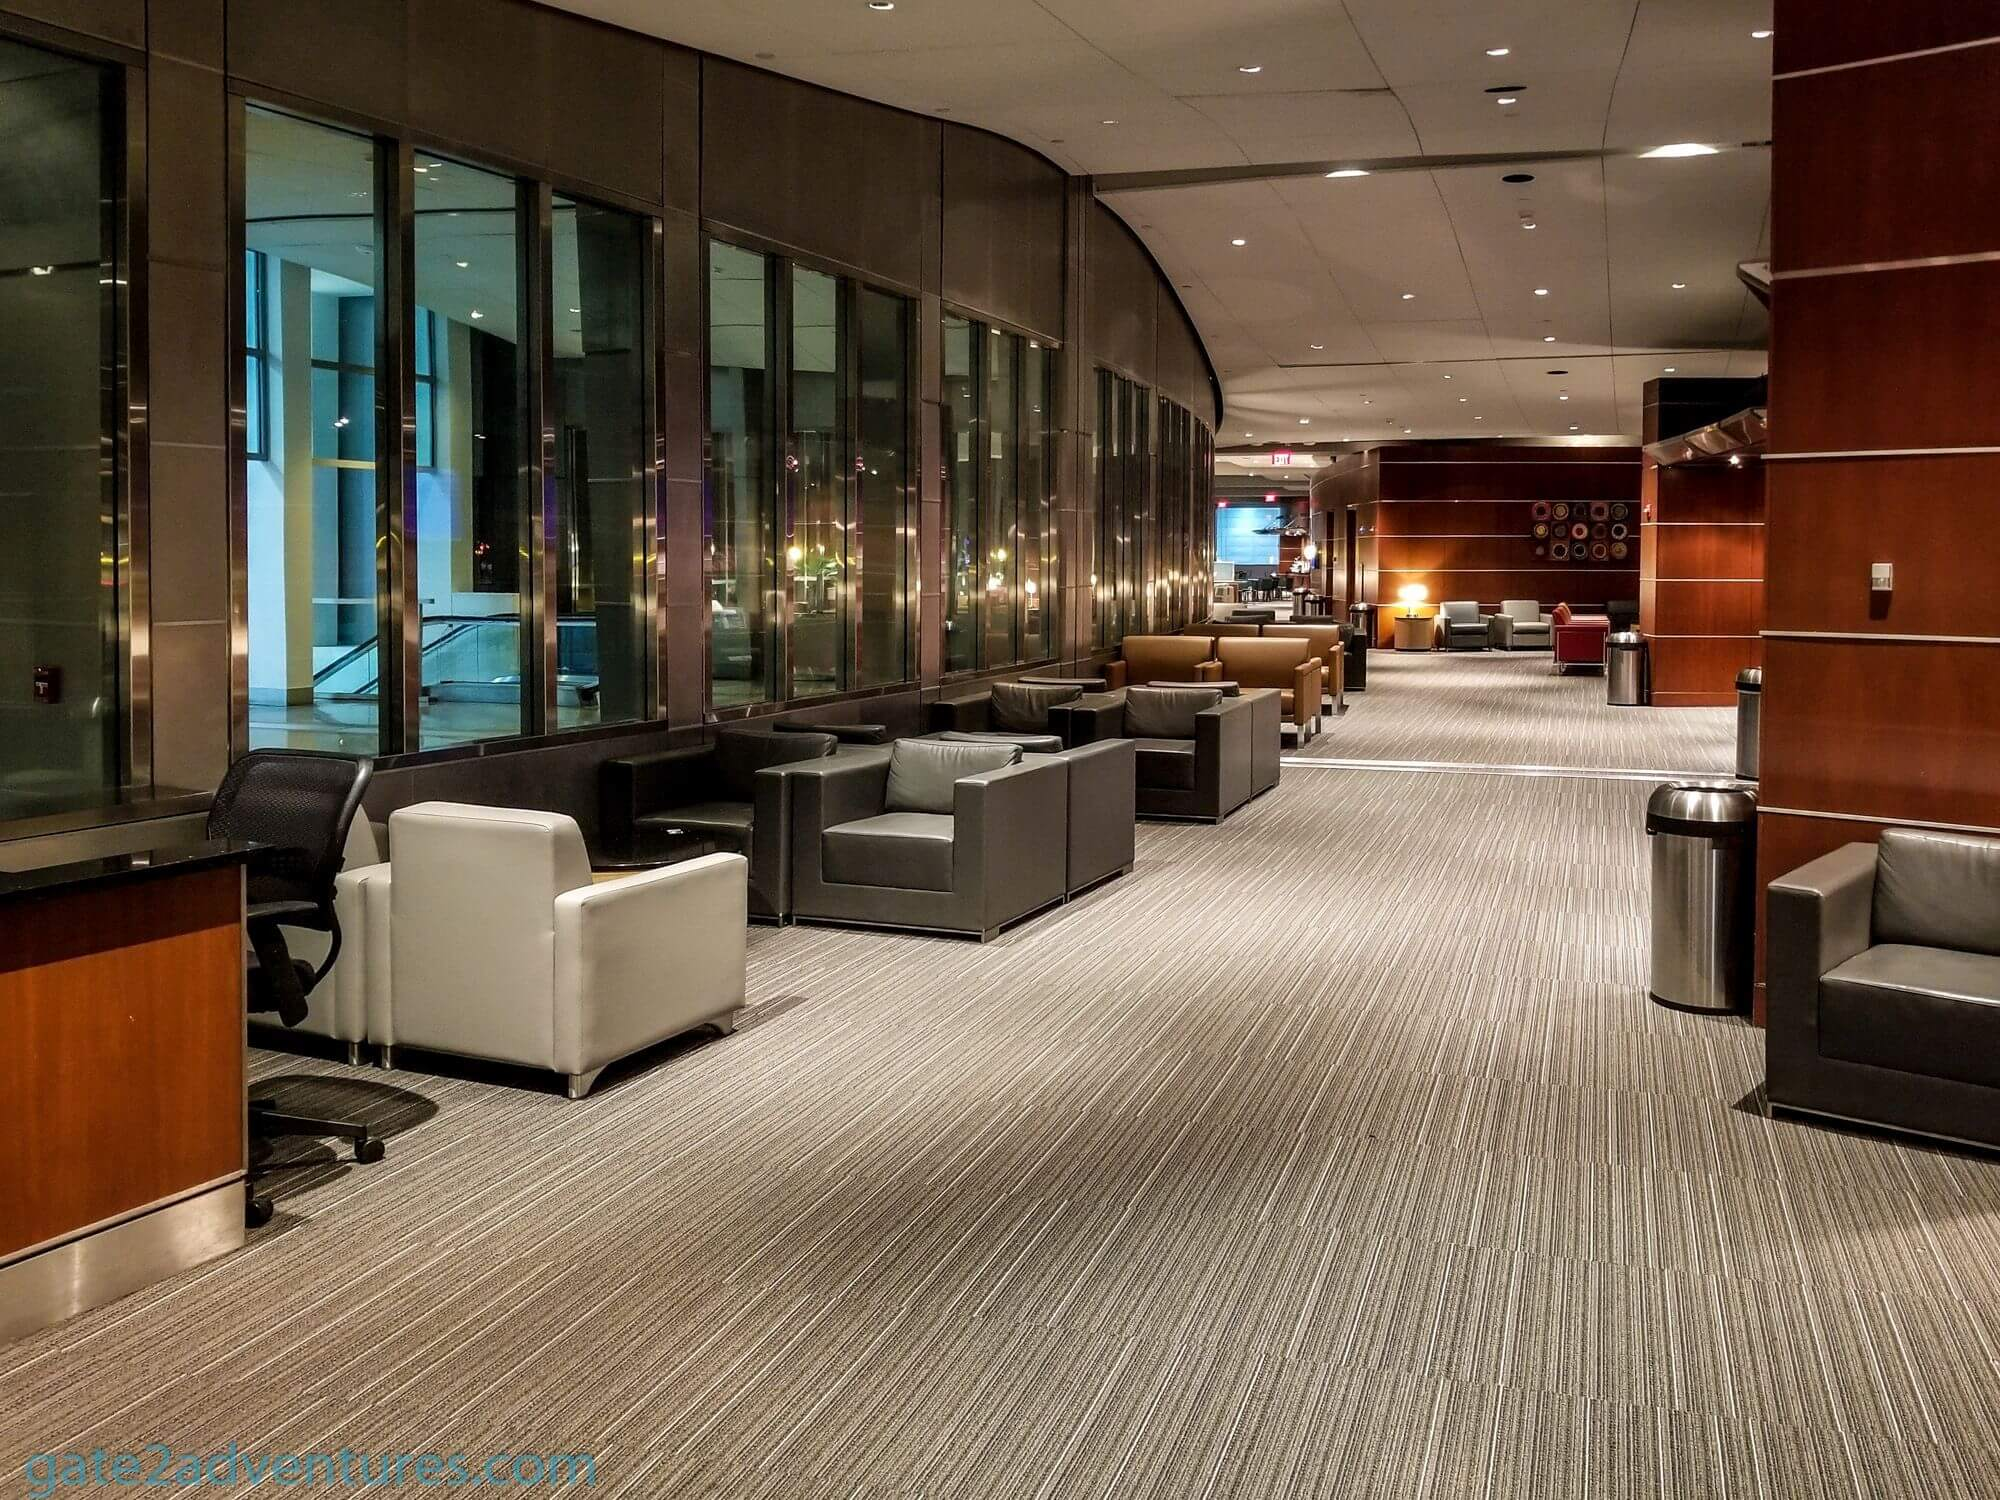 American Airlines Admirals Club Philadelphia - A Gates West